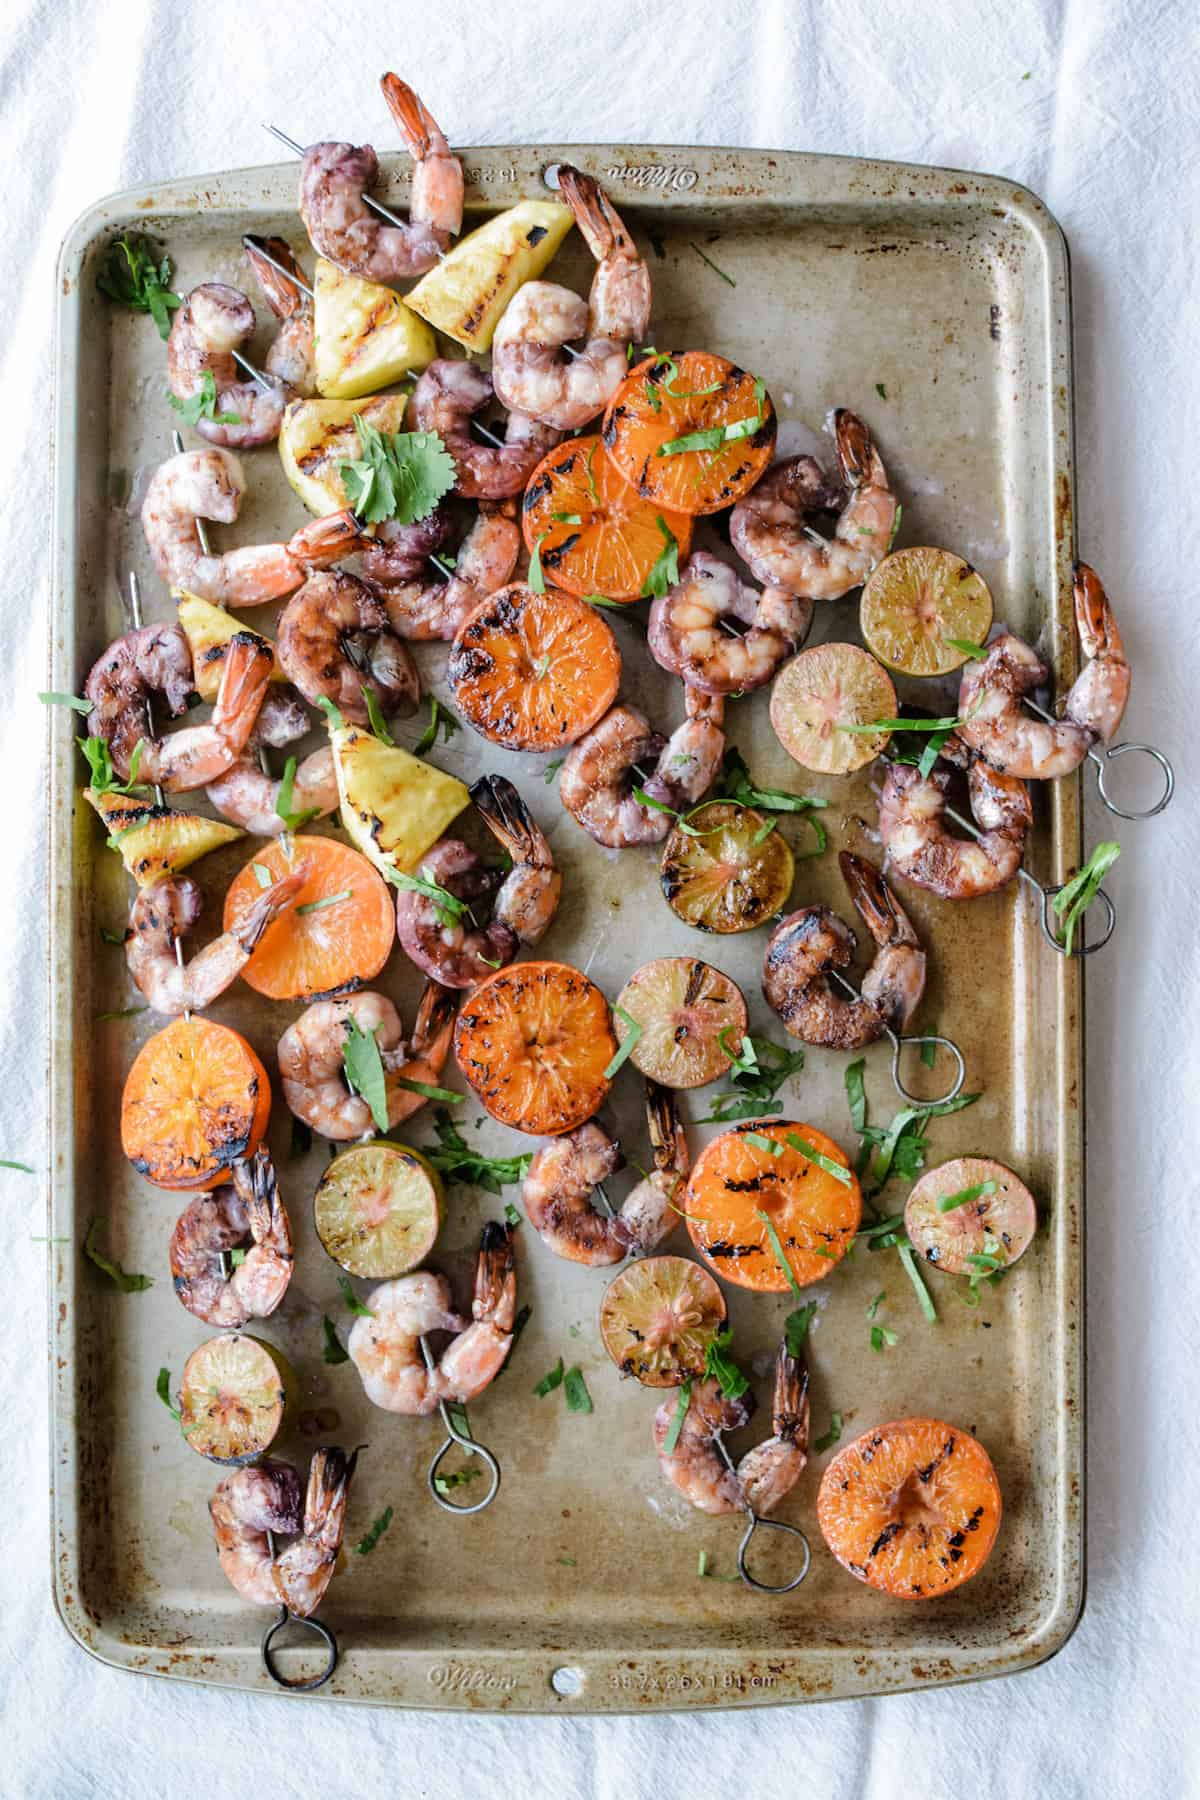 An overhead image of grilled shrimp skewers on metal skewers with shrimp, tangerine halves, pineapple, and key lime halves.